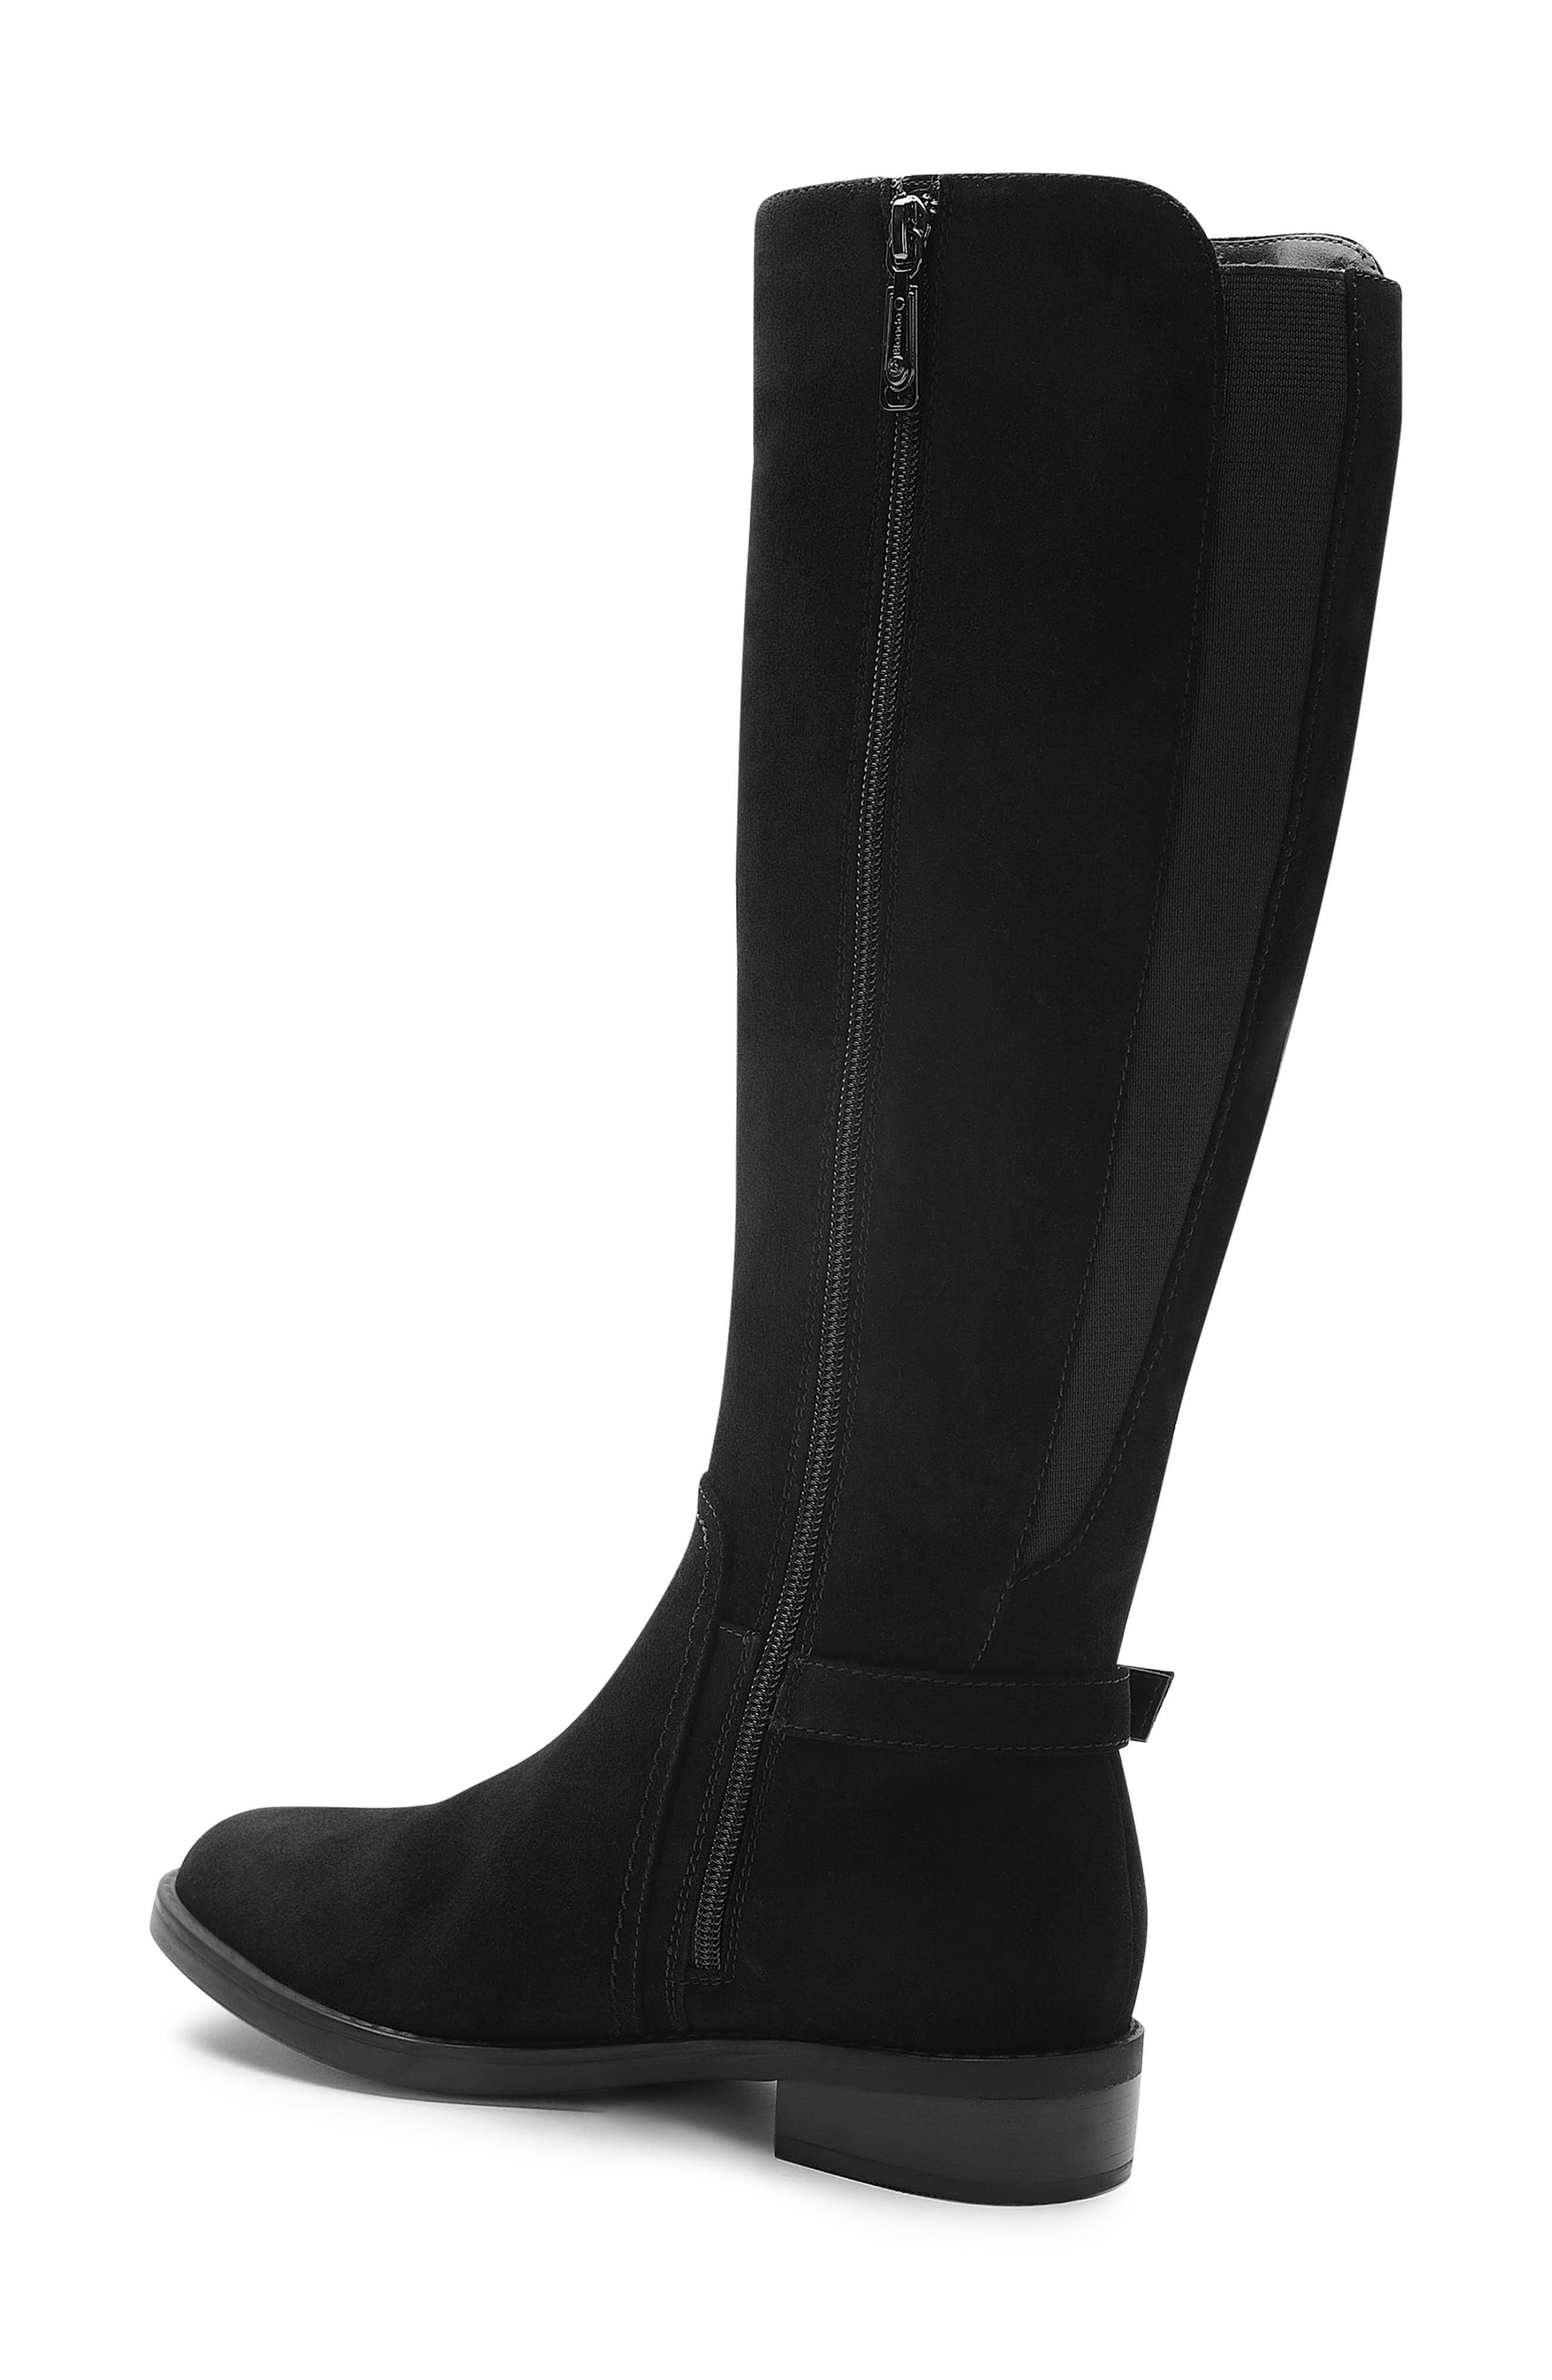 Evie Riding Waterproof Boot,                             Alternate thumbnail 2, color,                             BLACK SUEDE